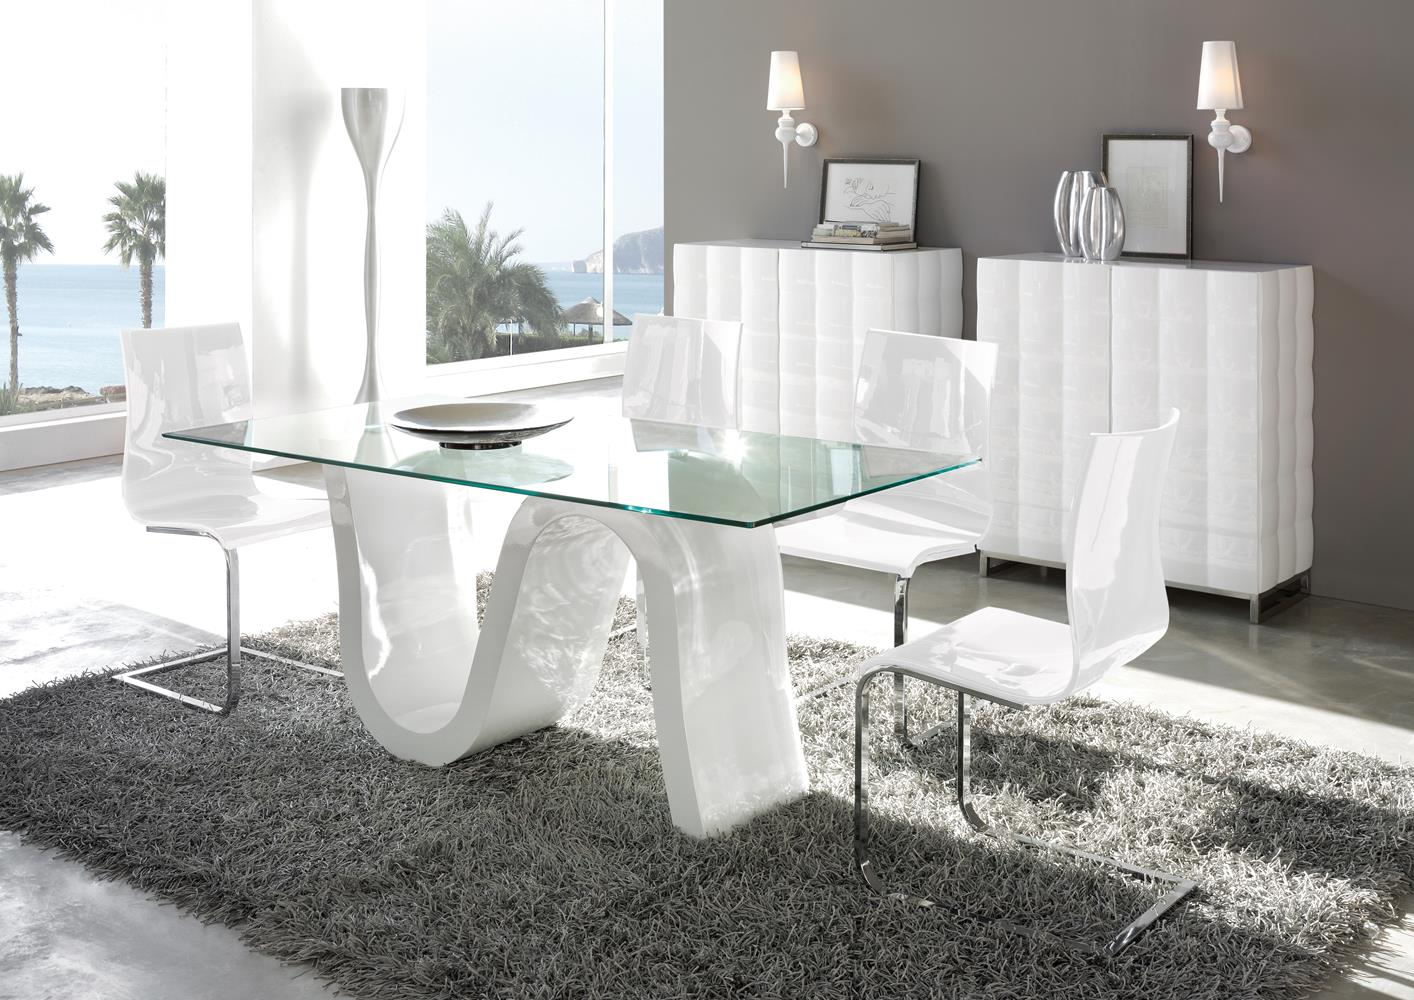 acheter votre table contemporiane plateau verre pied laqu blanc chez simeuble. Black Bedroom Furniture Sets. Home Design Ideas